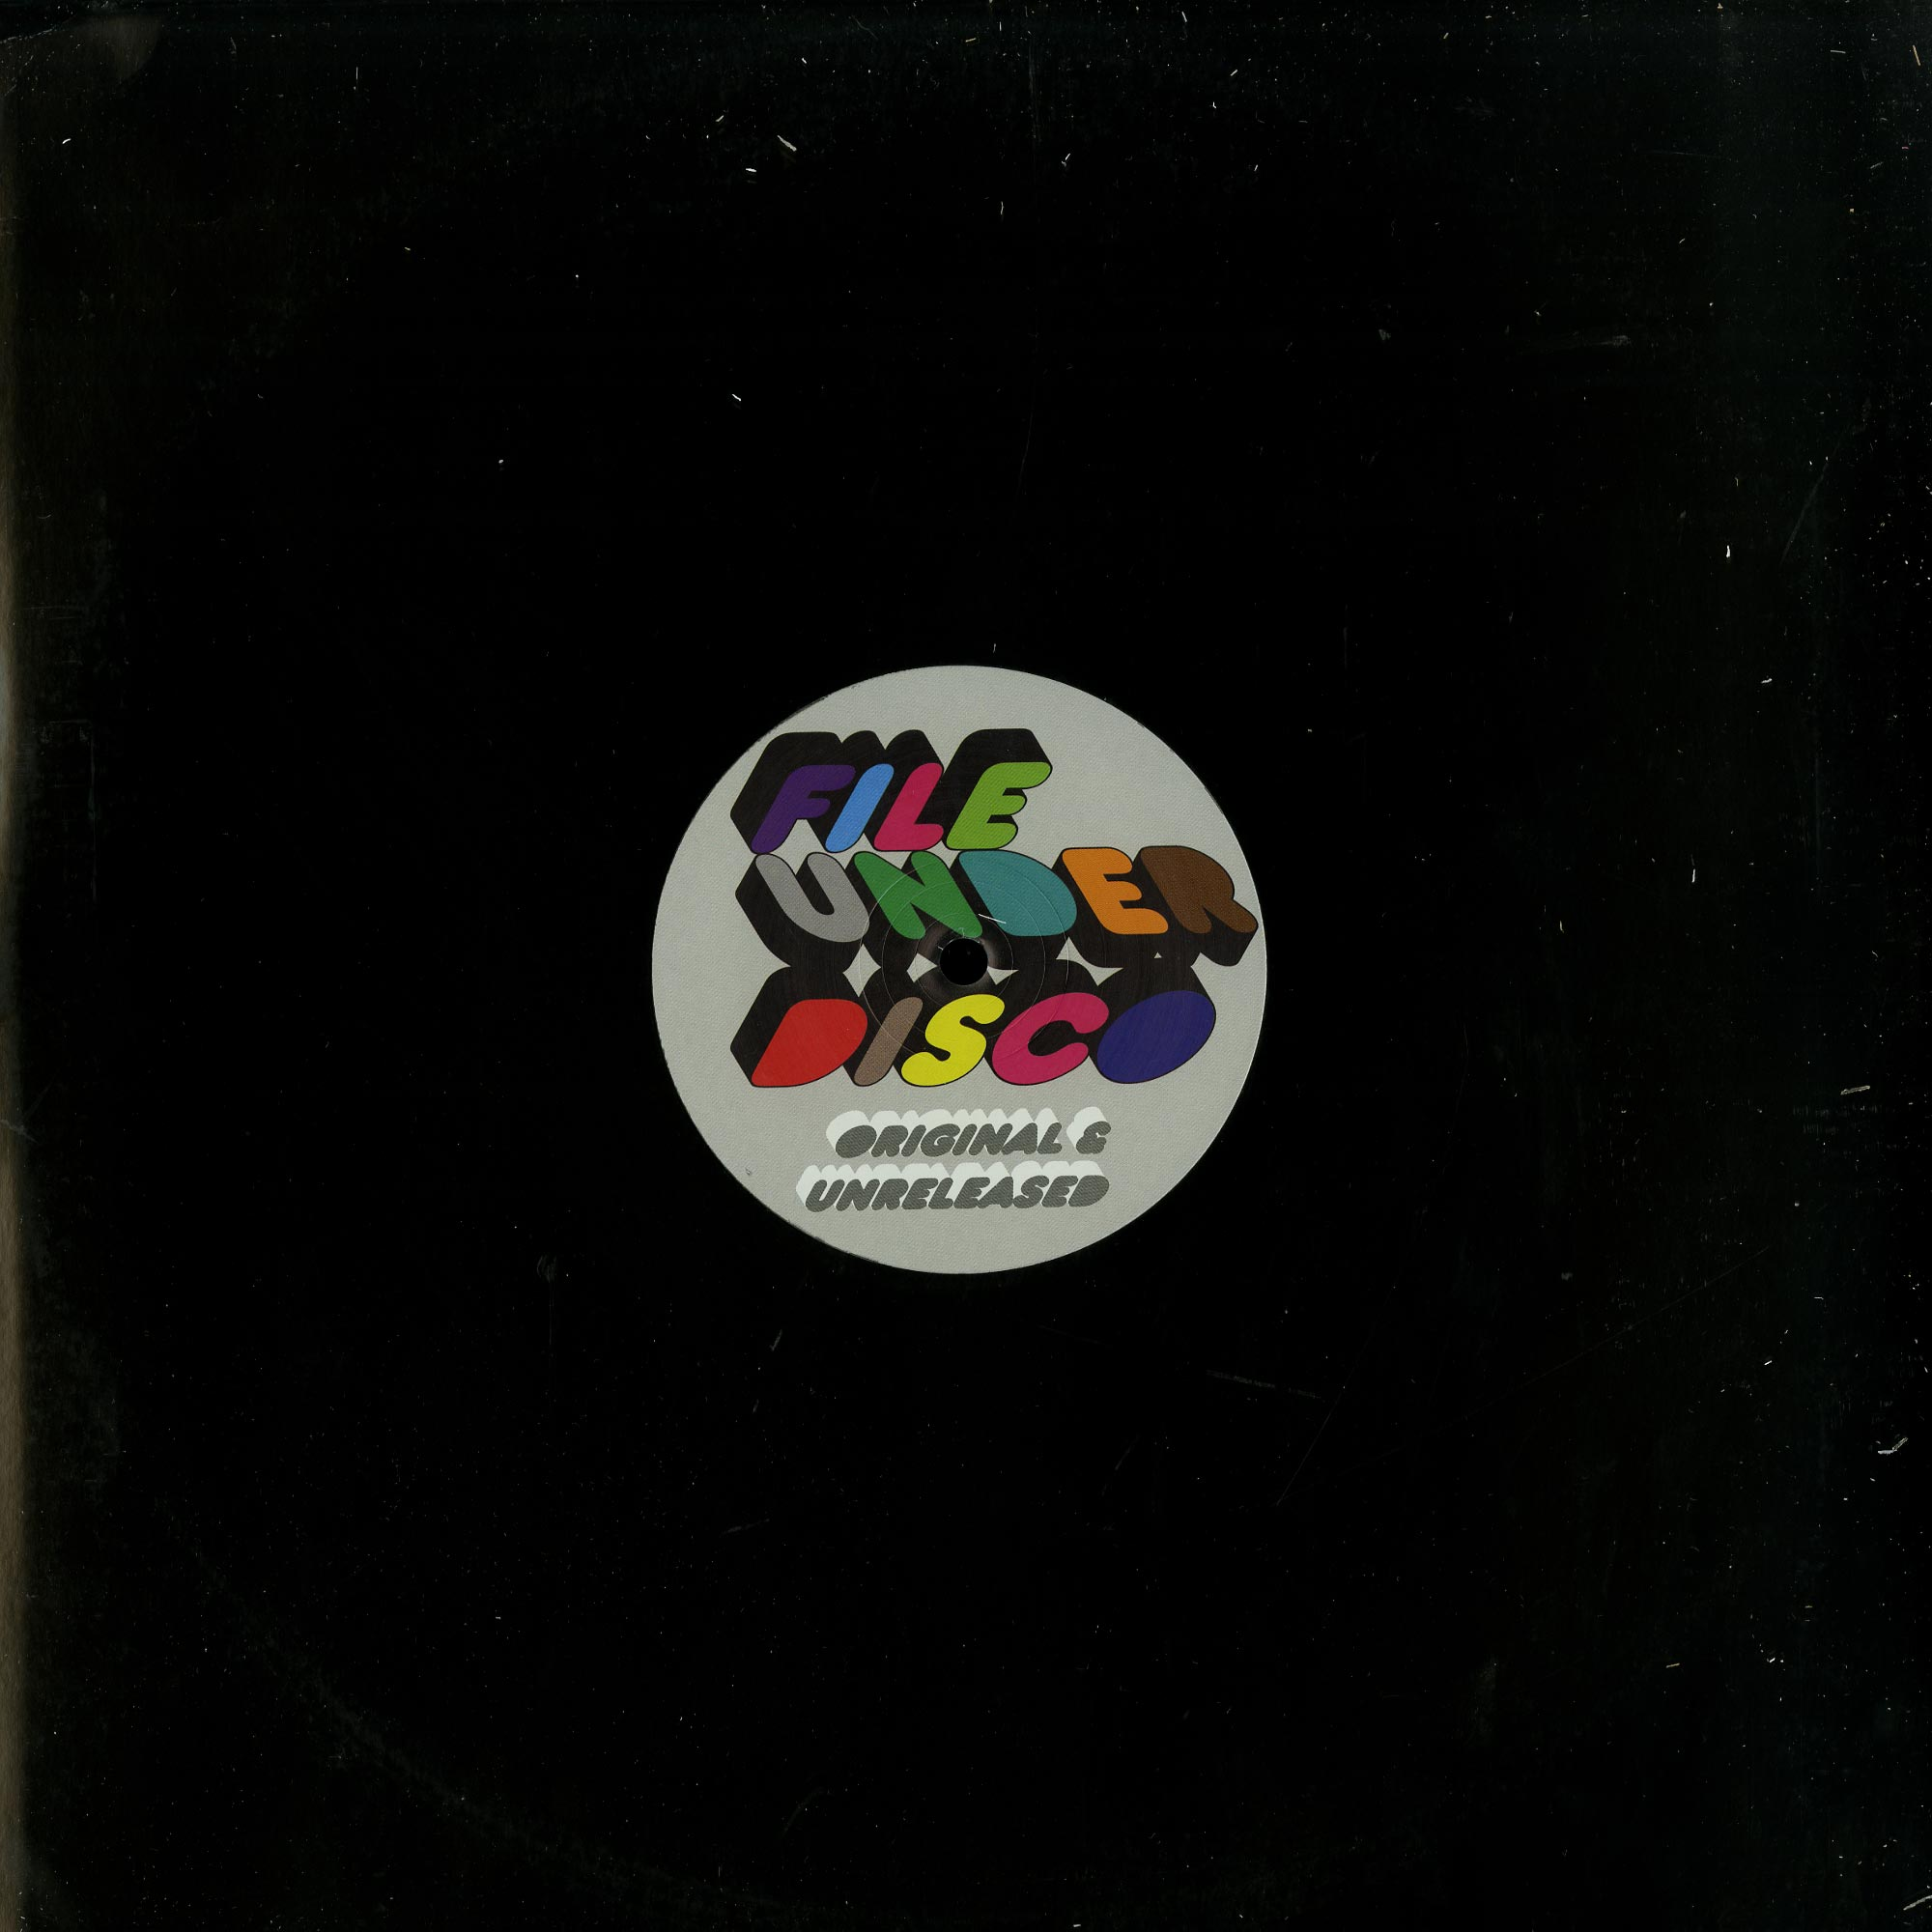 Drop Out Orchestra / J Kriv And The Disco Machine - ORIGINAL AND UNRELEASED